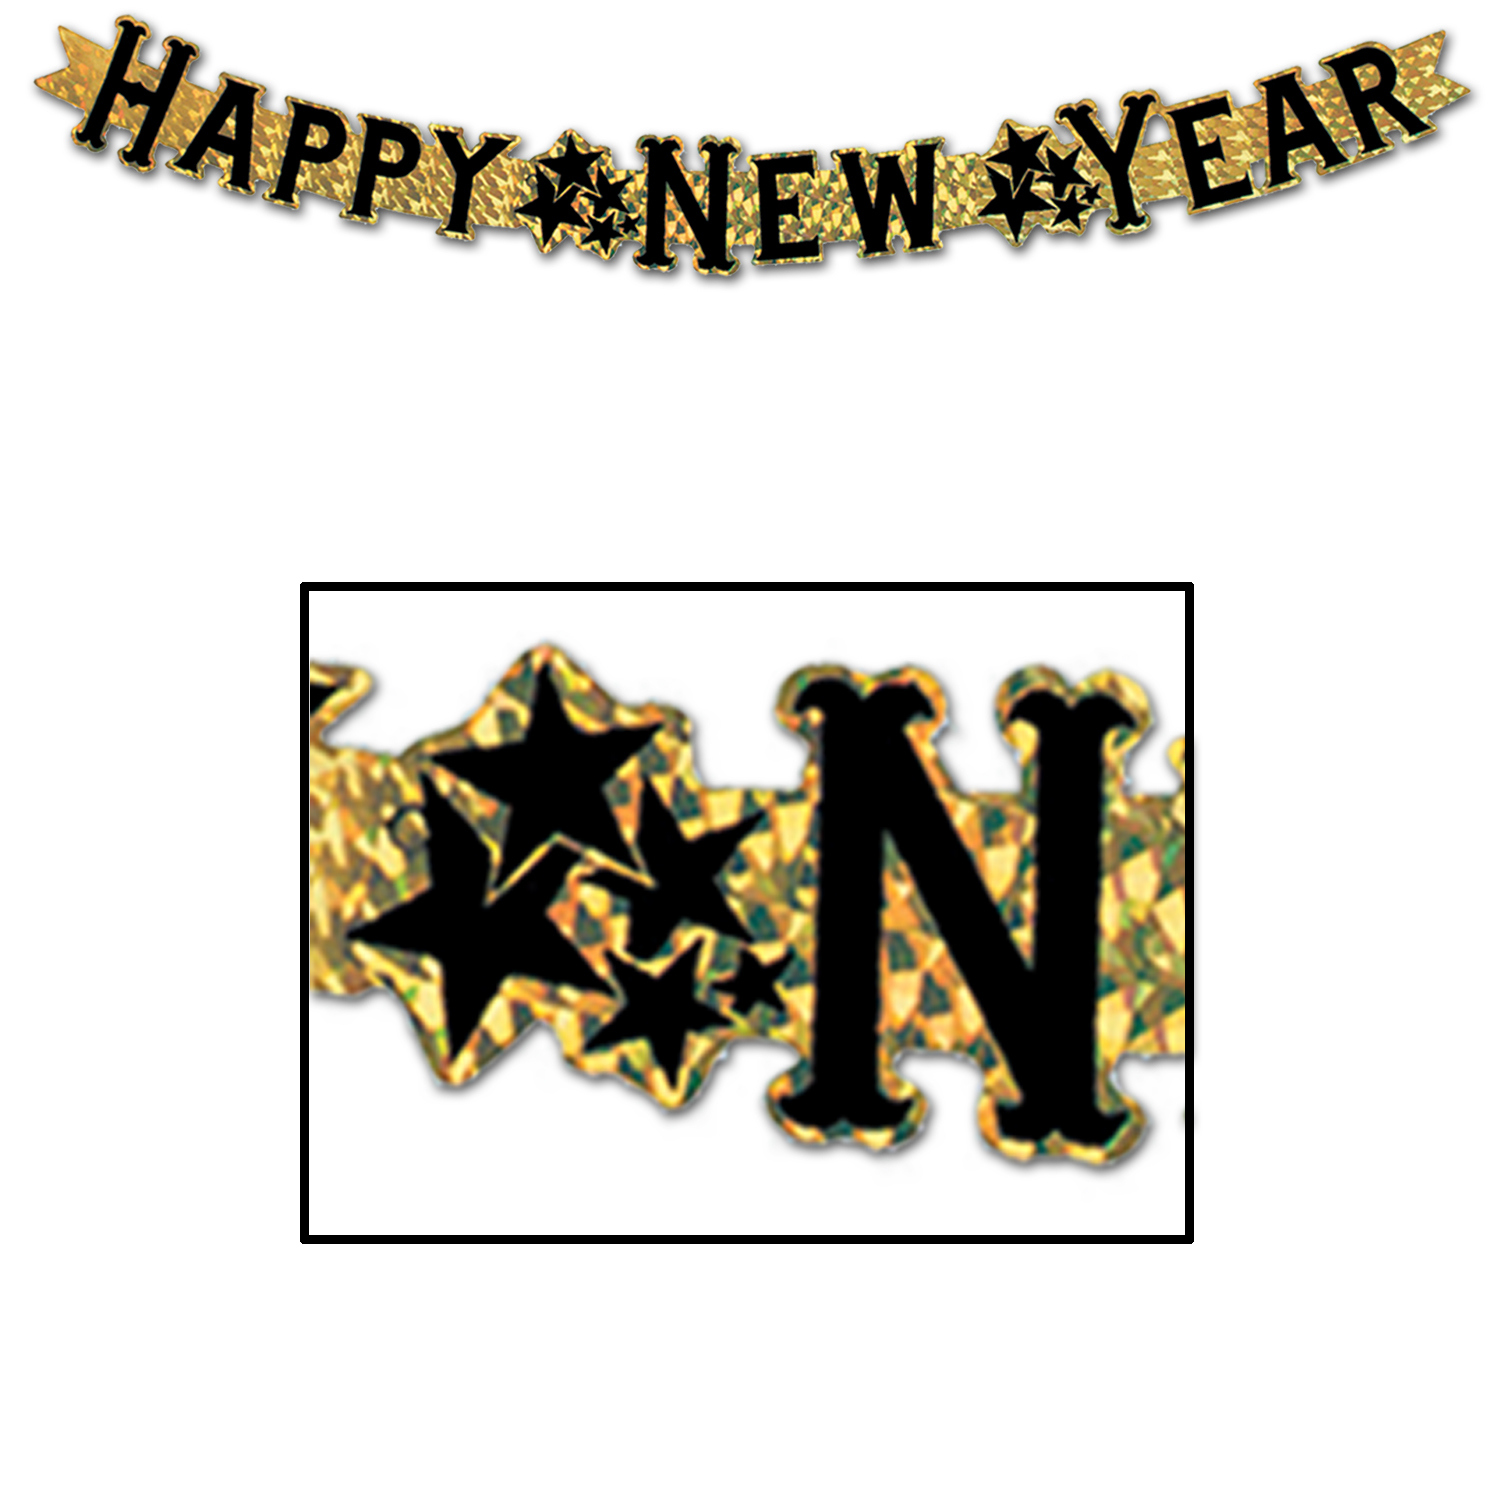 Prismatic gold streamer with black happy new year lettering and star clumps in between wording.